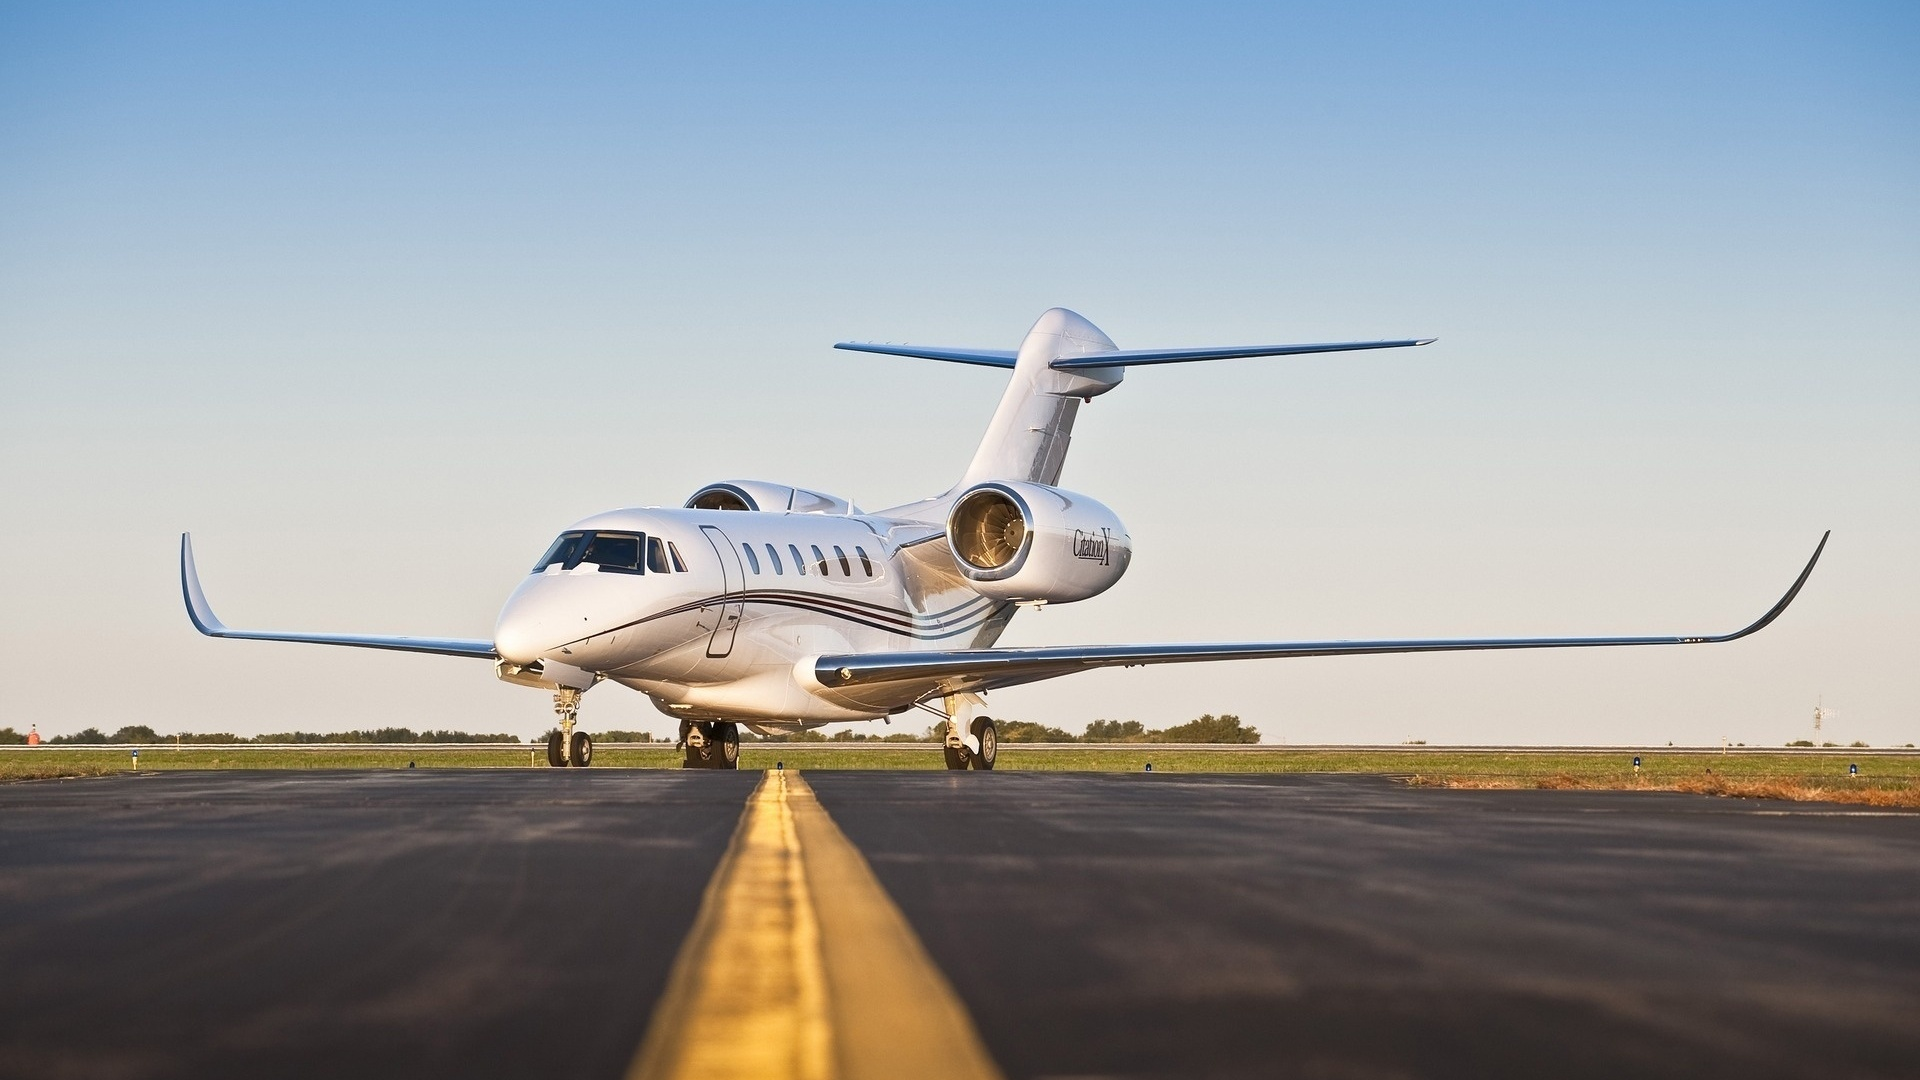 Wallpaper fastest business jet cessna aircraft civil aviation 1920x1080